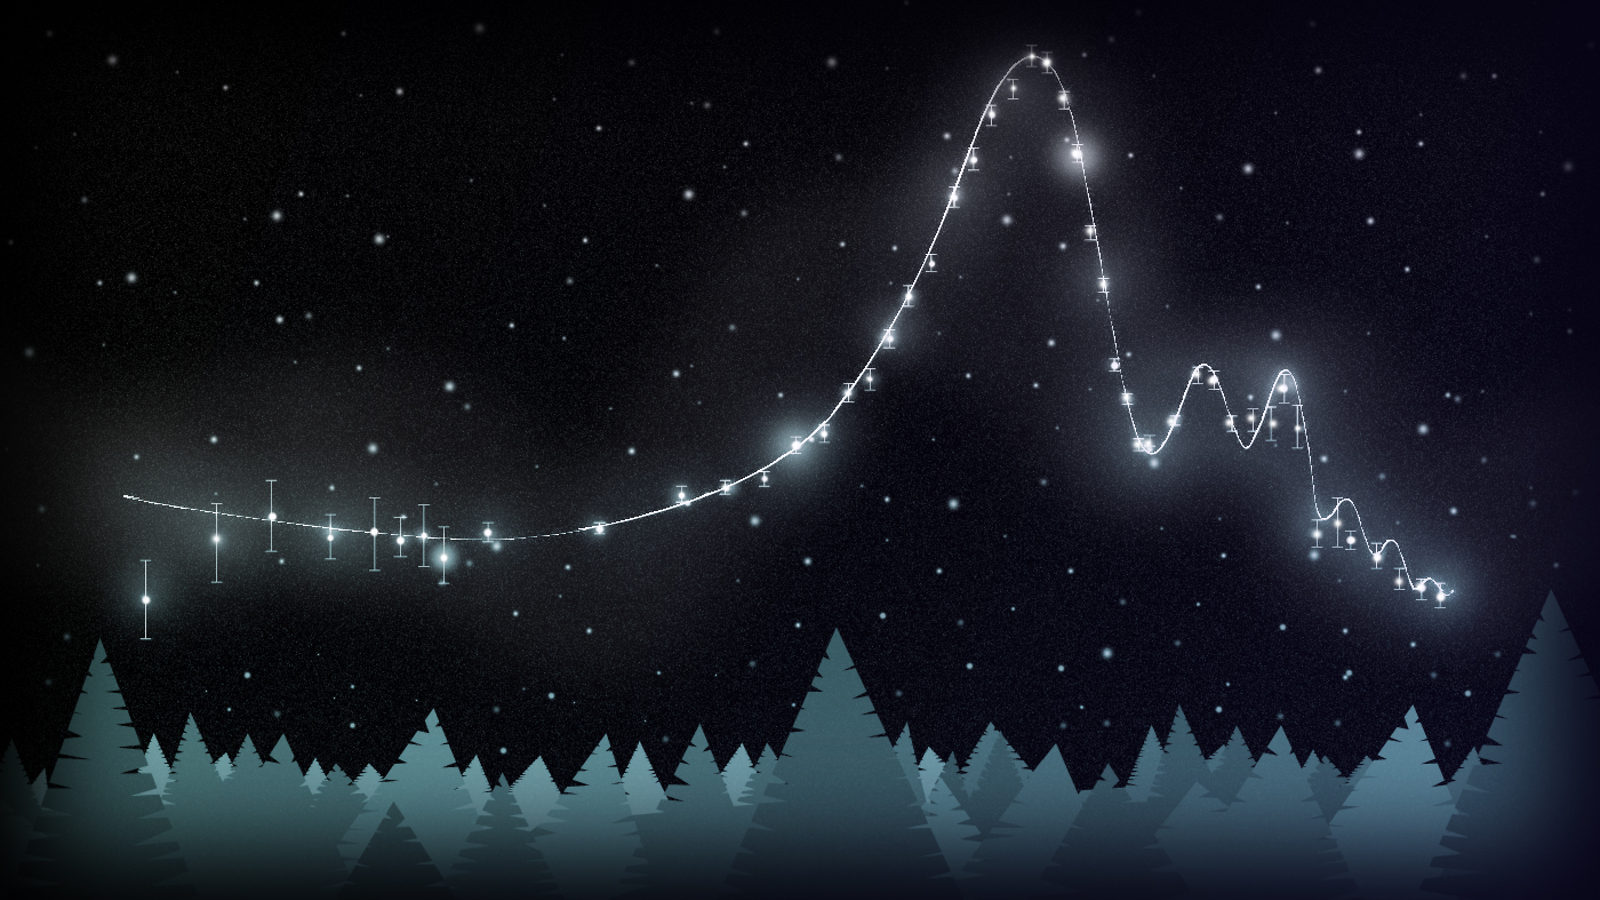 Illustration of Astrostatistics made out of stars in the sky, connected by light path, forest on horizon below